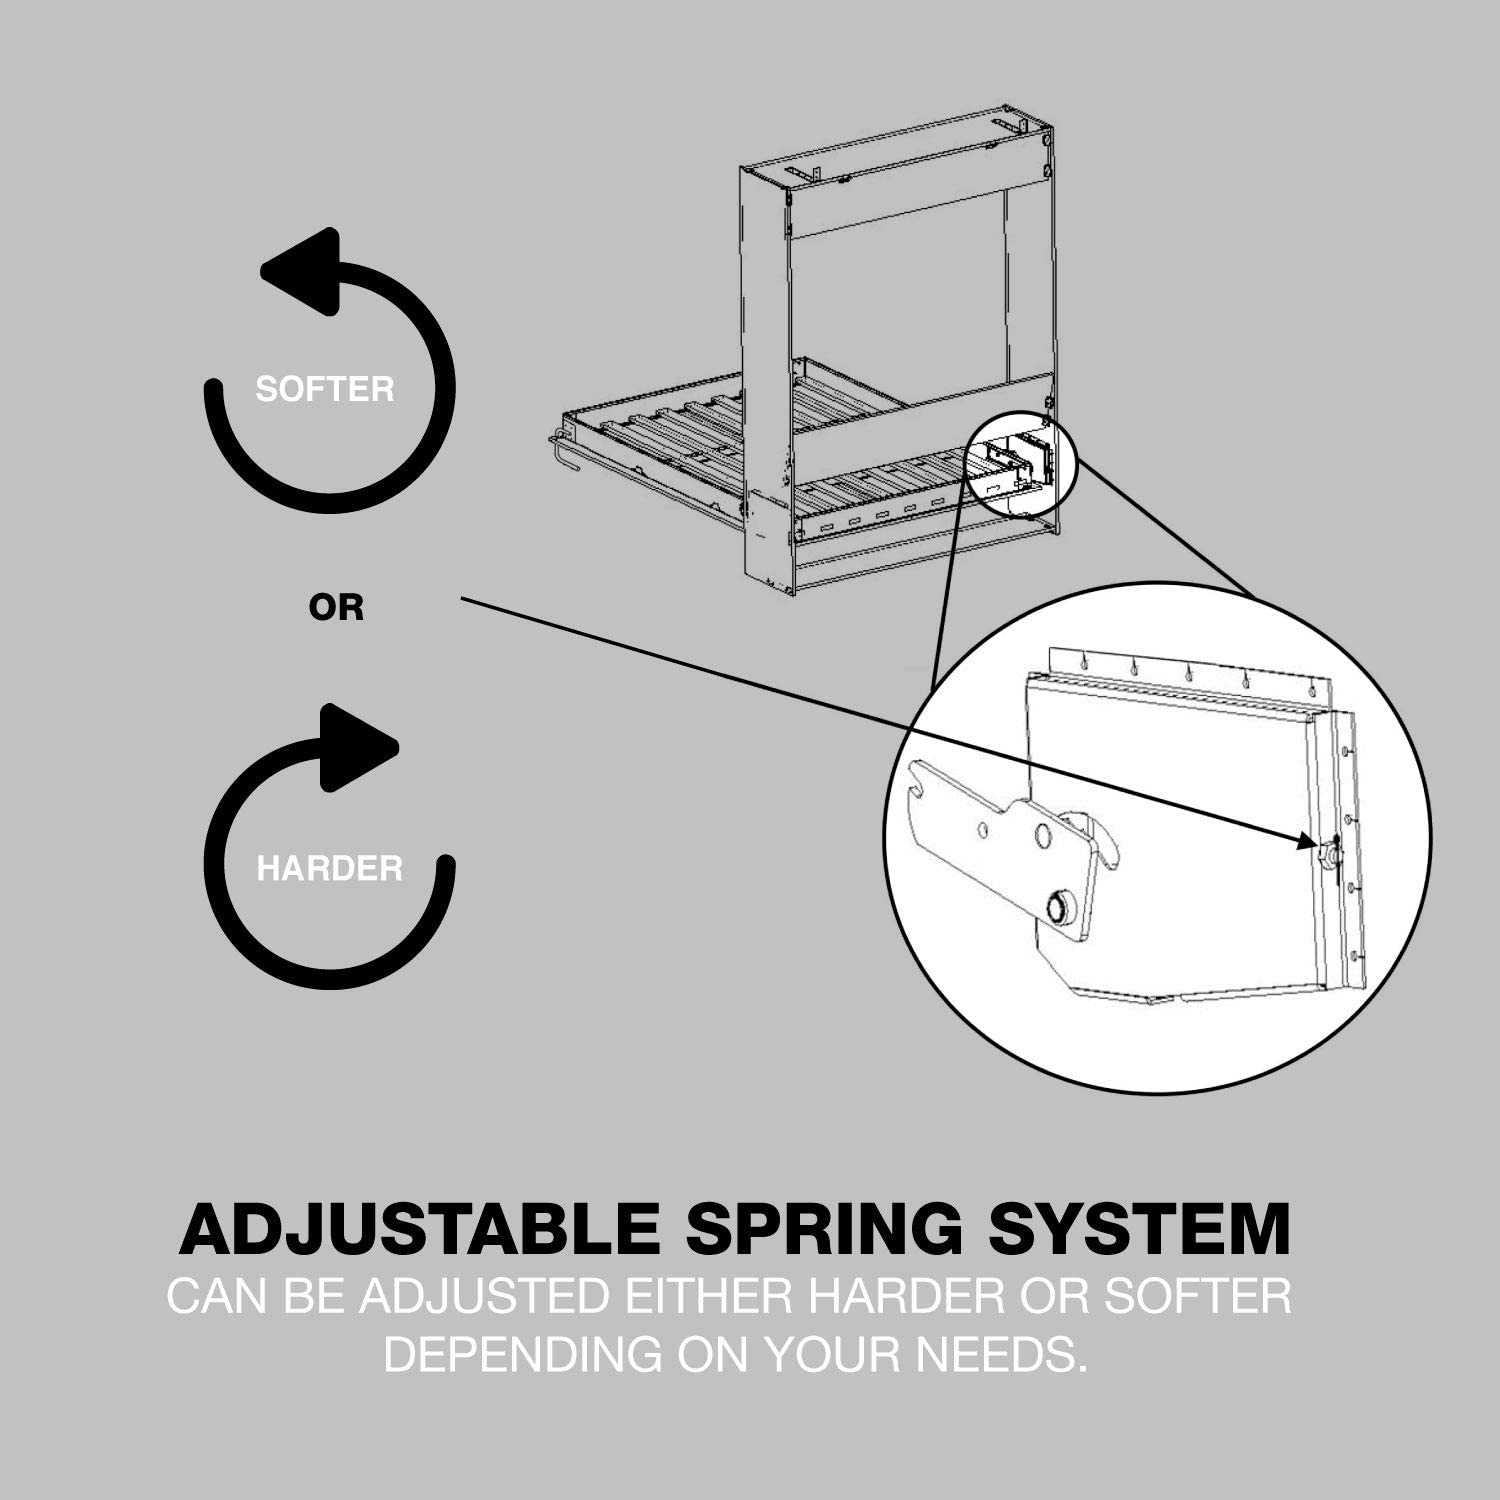 Made in Canada Space-Saving Hidden Storage WBS DIY Murphy Bed Hardware Kit Full Size Supportive Spring Design Guest or Family Compact Horizontal Wall Installation Sleep System